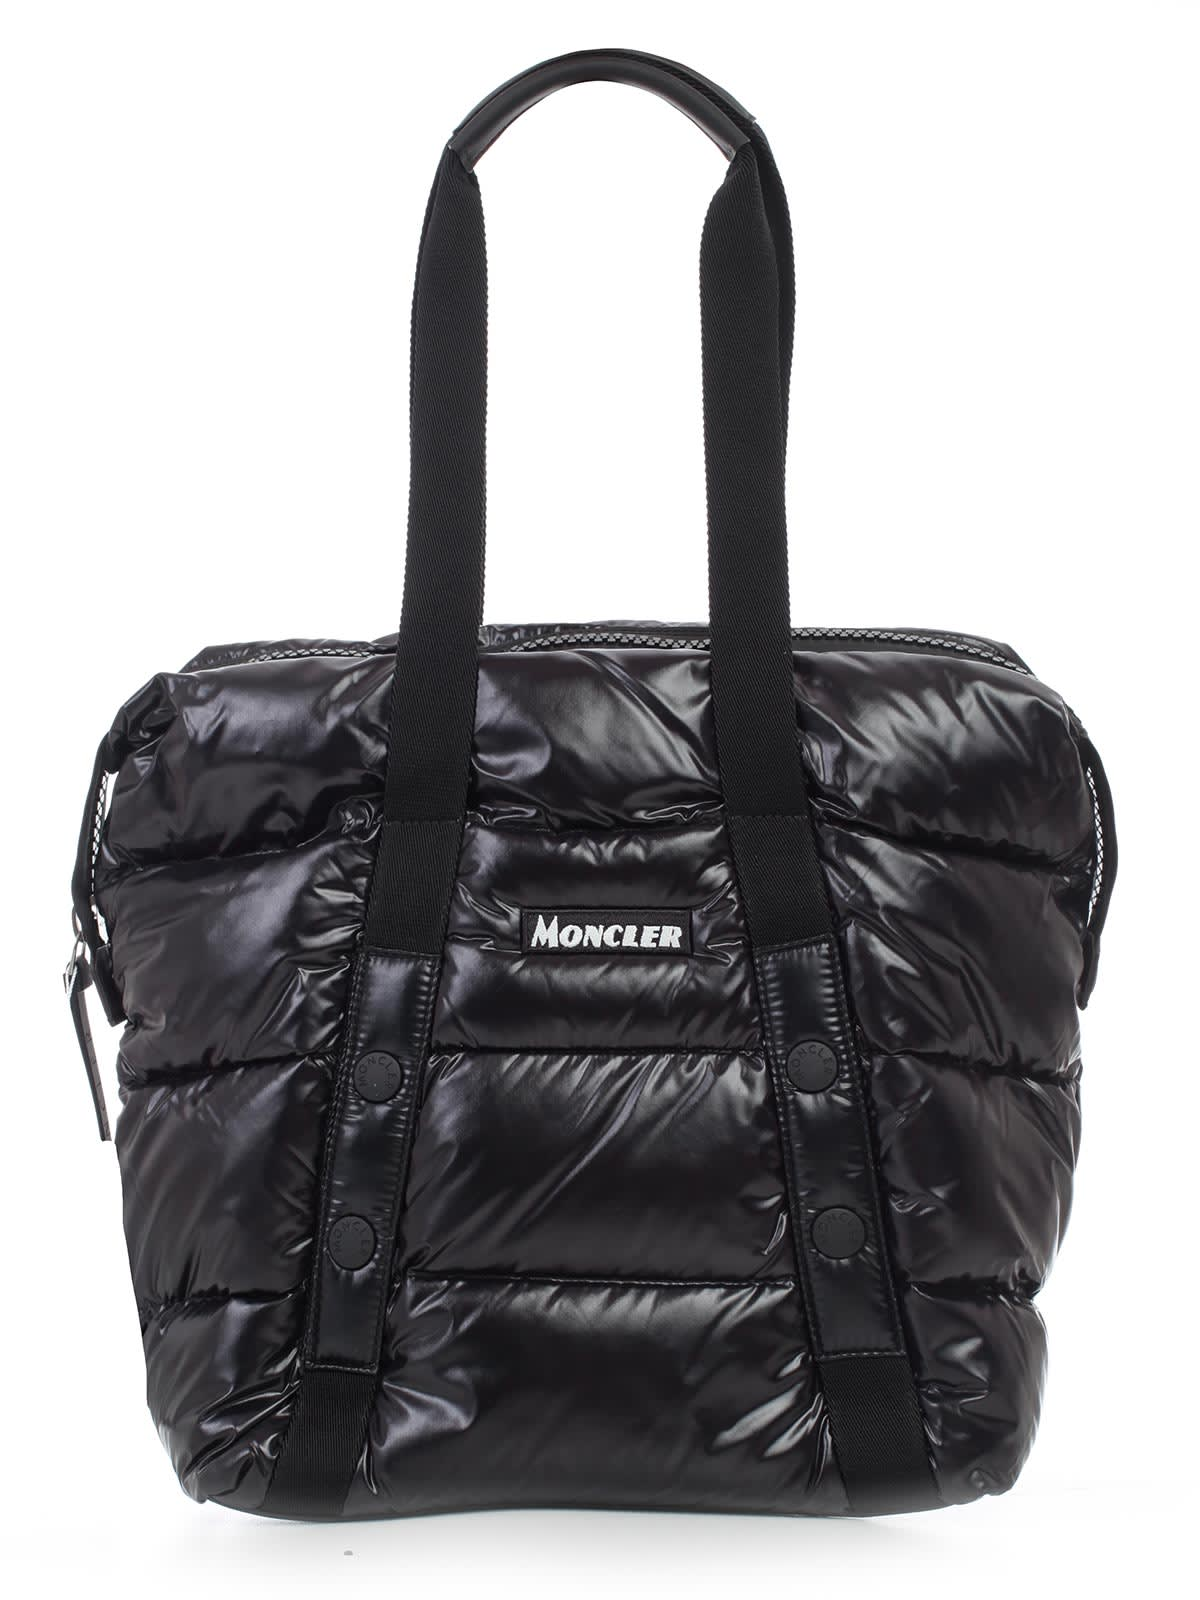 Moncler Marne Shopping Bag